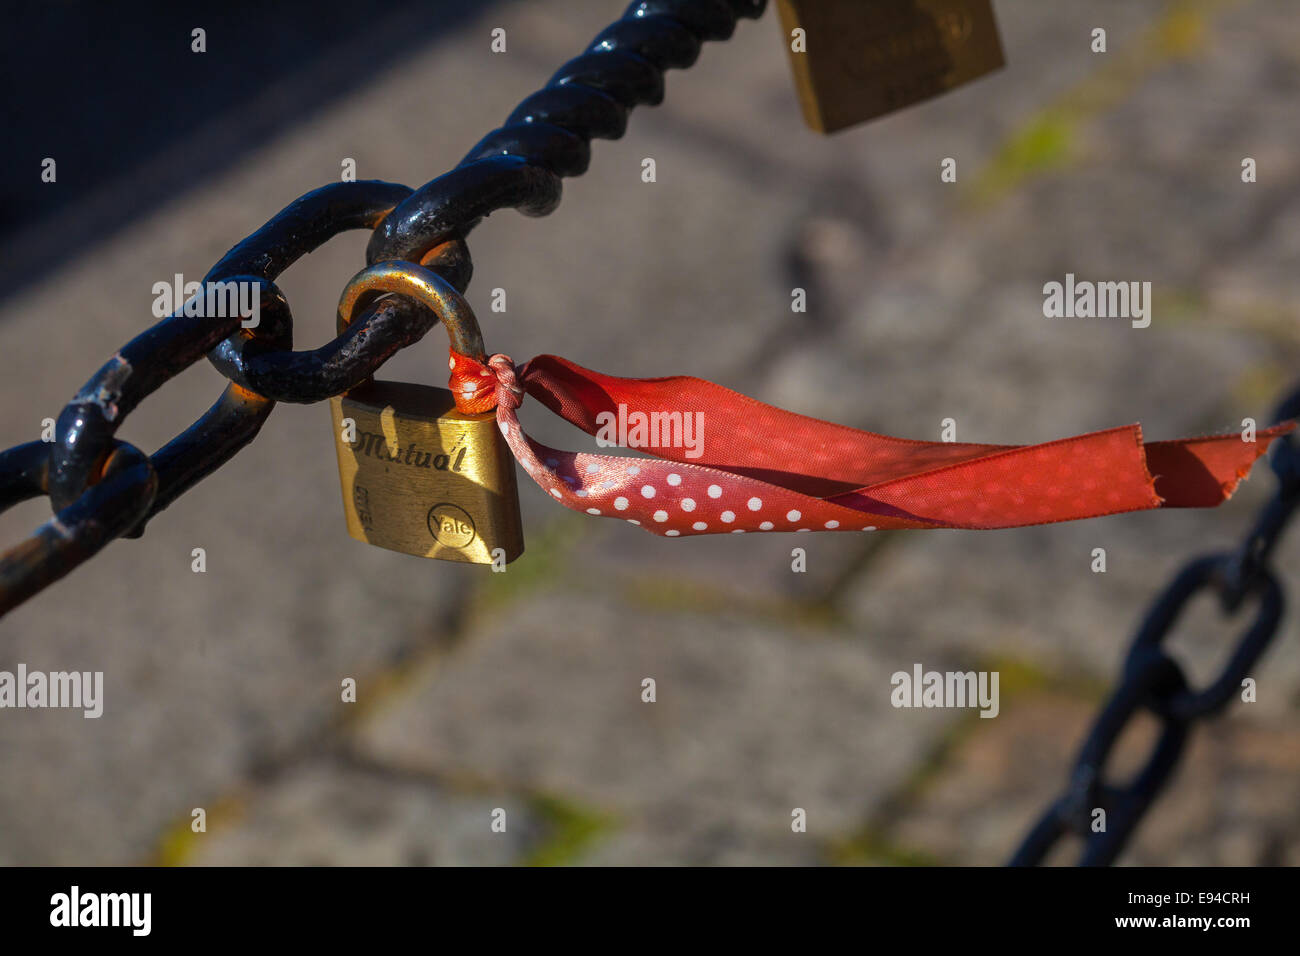 Liverpool, Merseyside, UK. 19th Oct, 2014. The future of hundreds of sentimental love locks at Liverpool's Albert - Stock Image